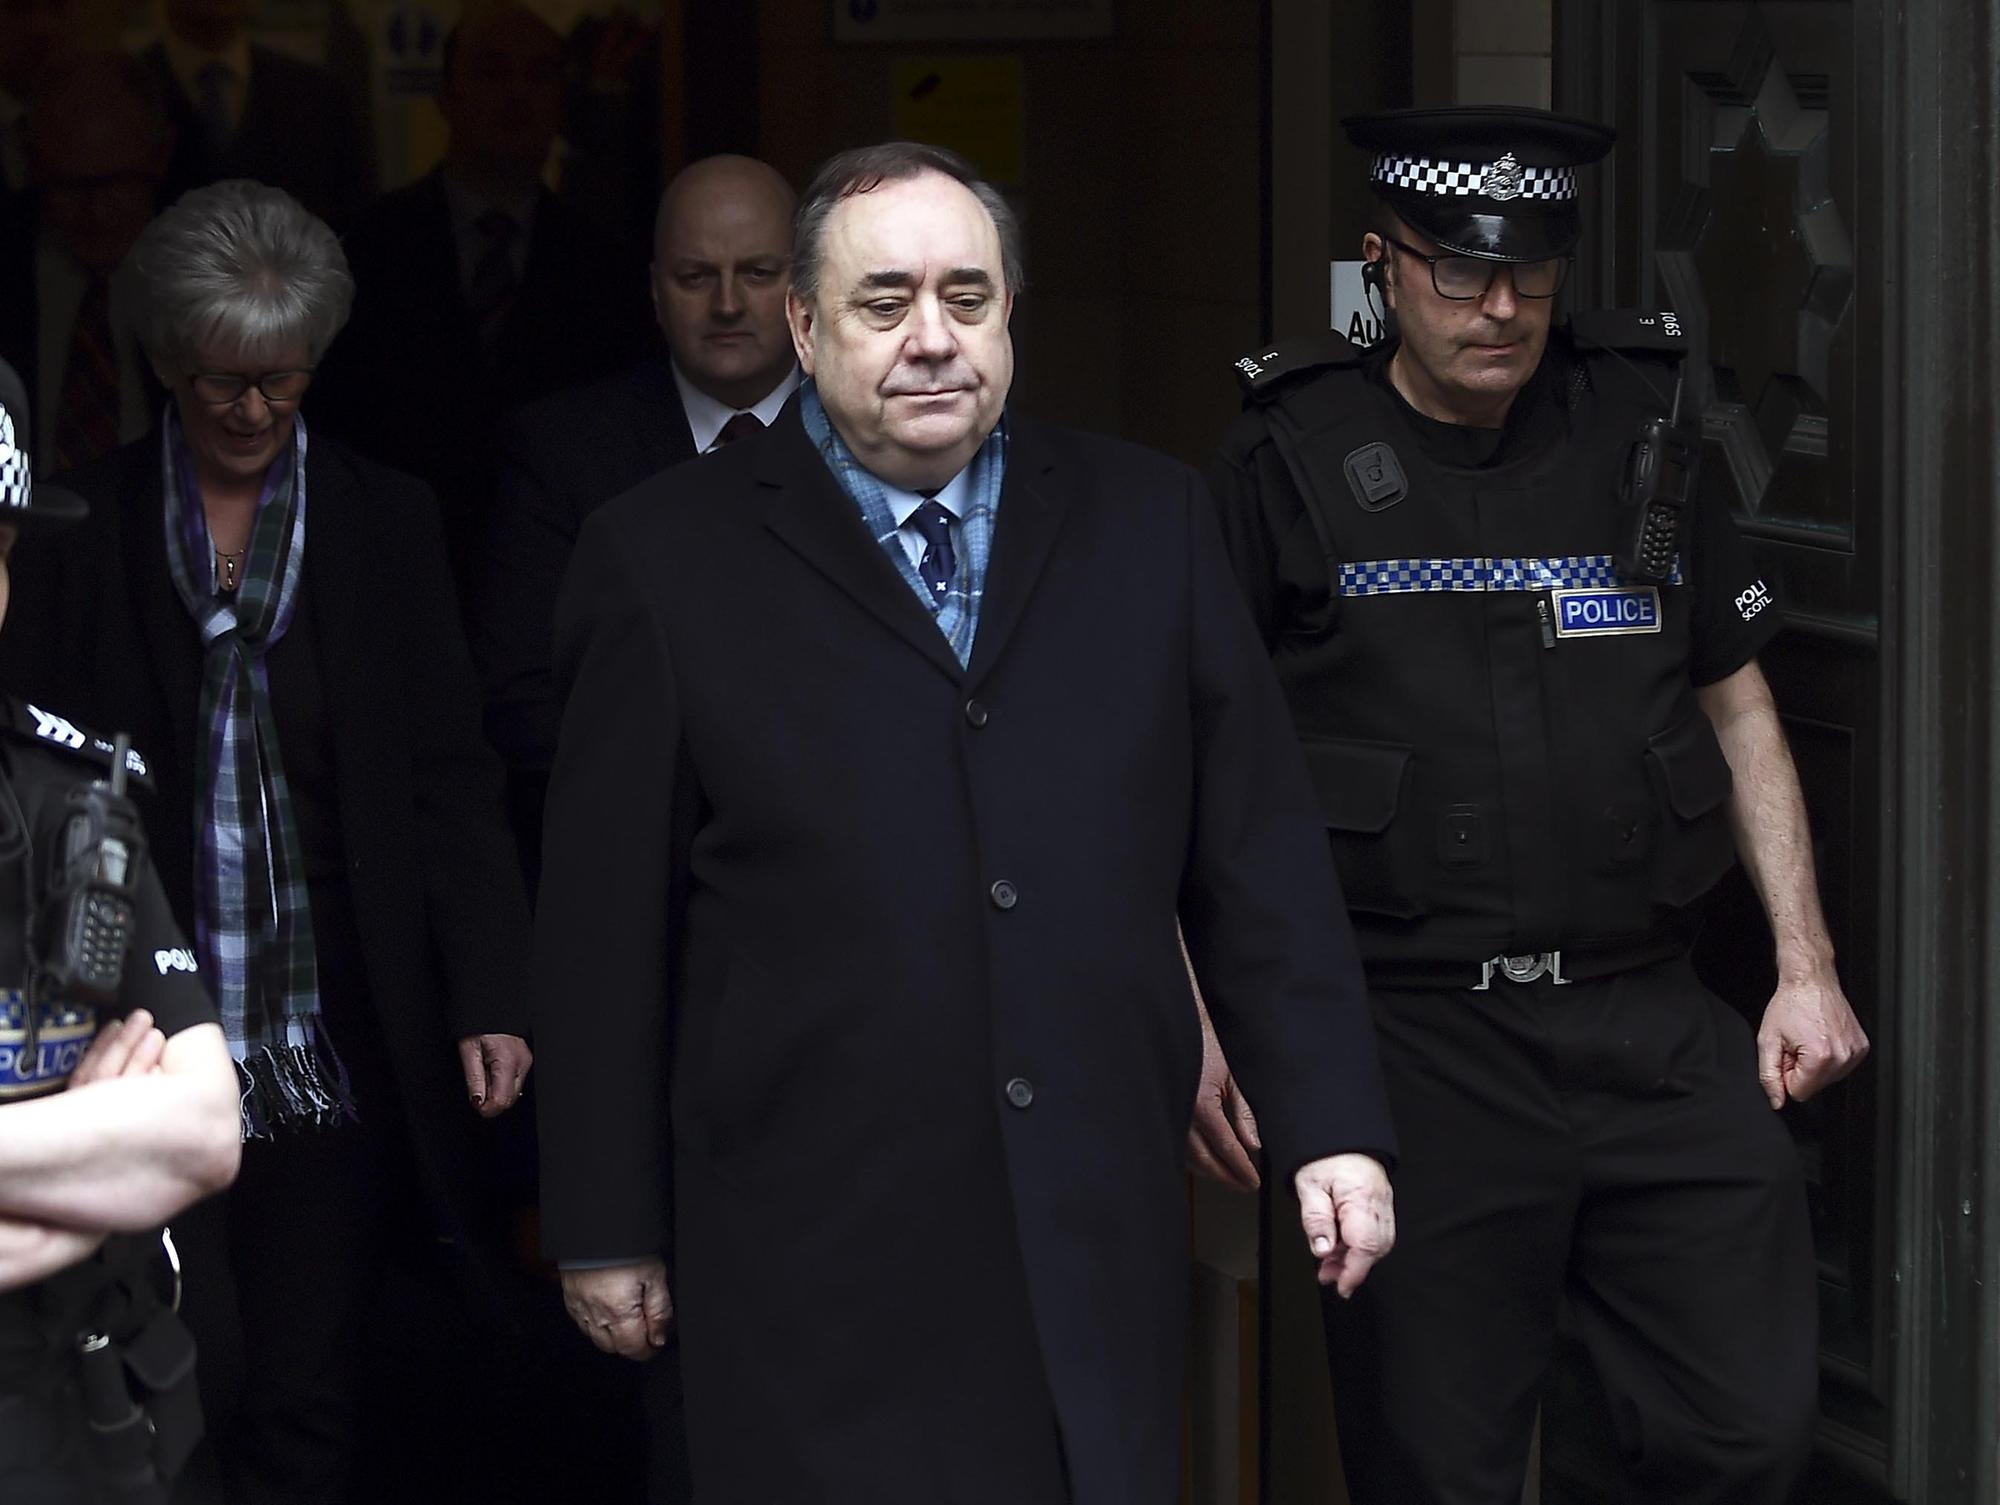 Salmond bides his time - but 'reckoning' will harm party